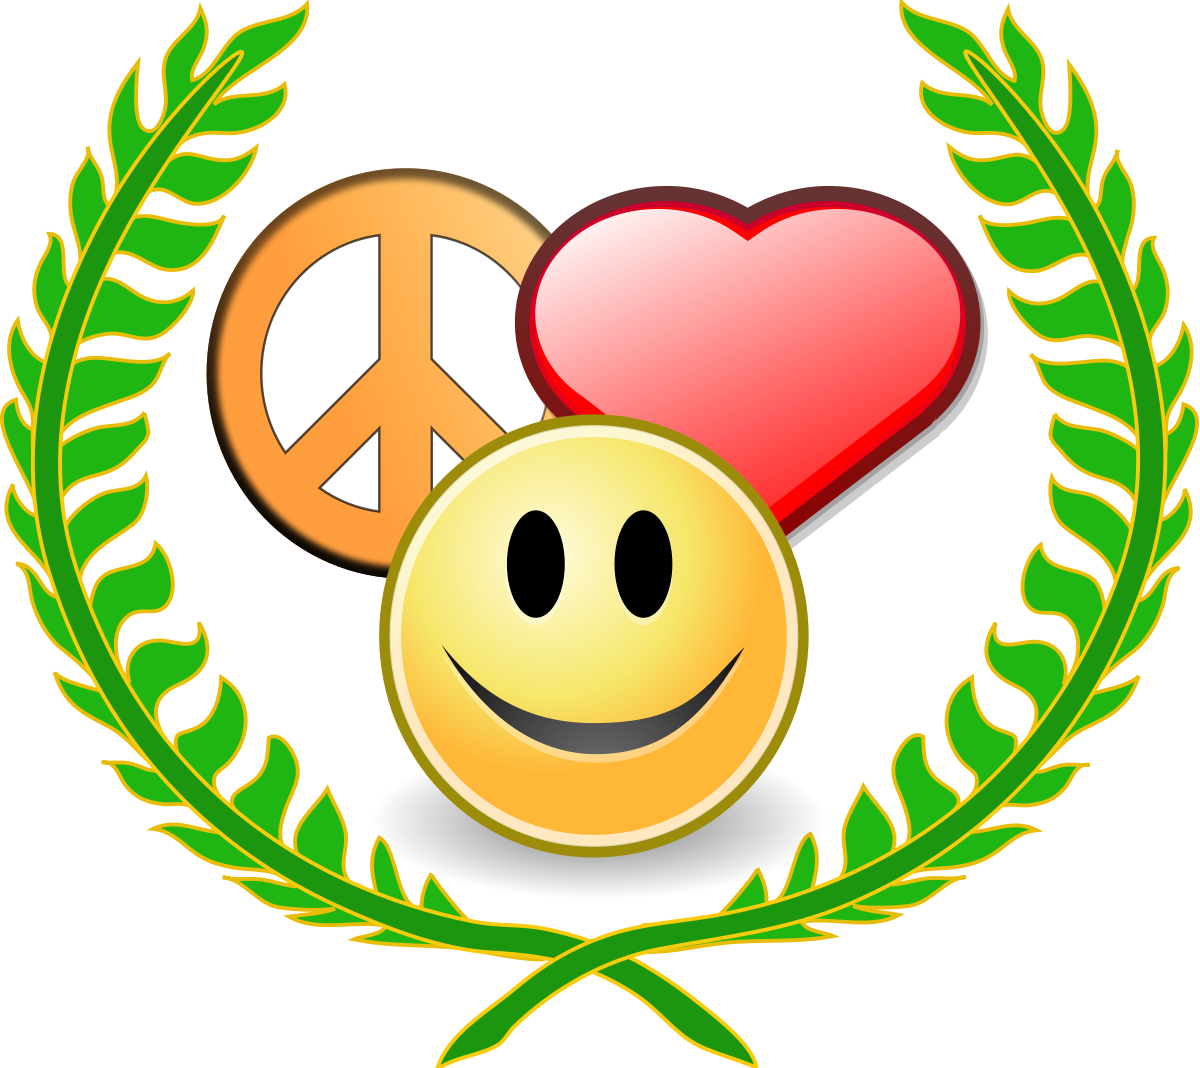 Happiness thinking wikiversity . Thoughts clipart positive thought